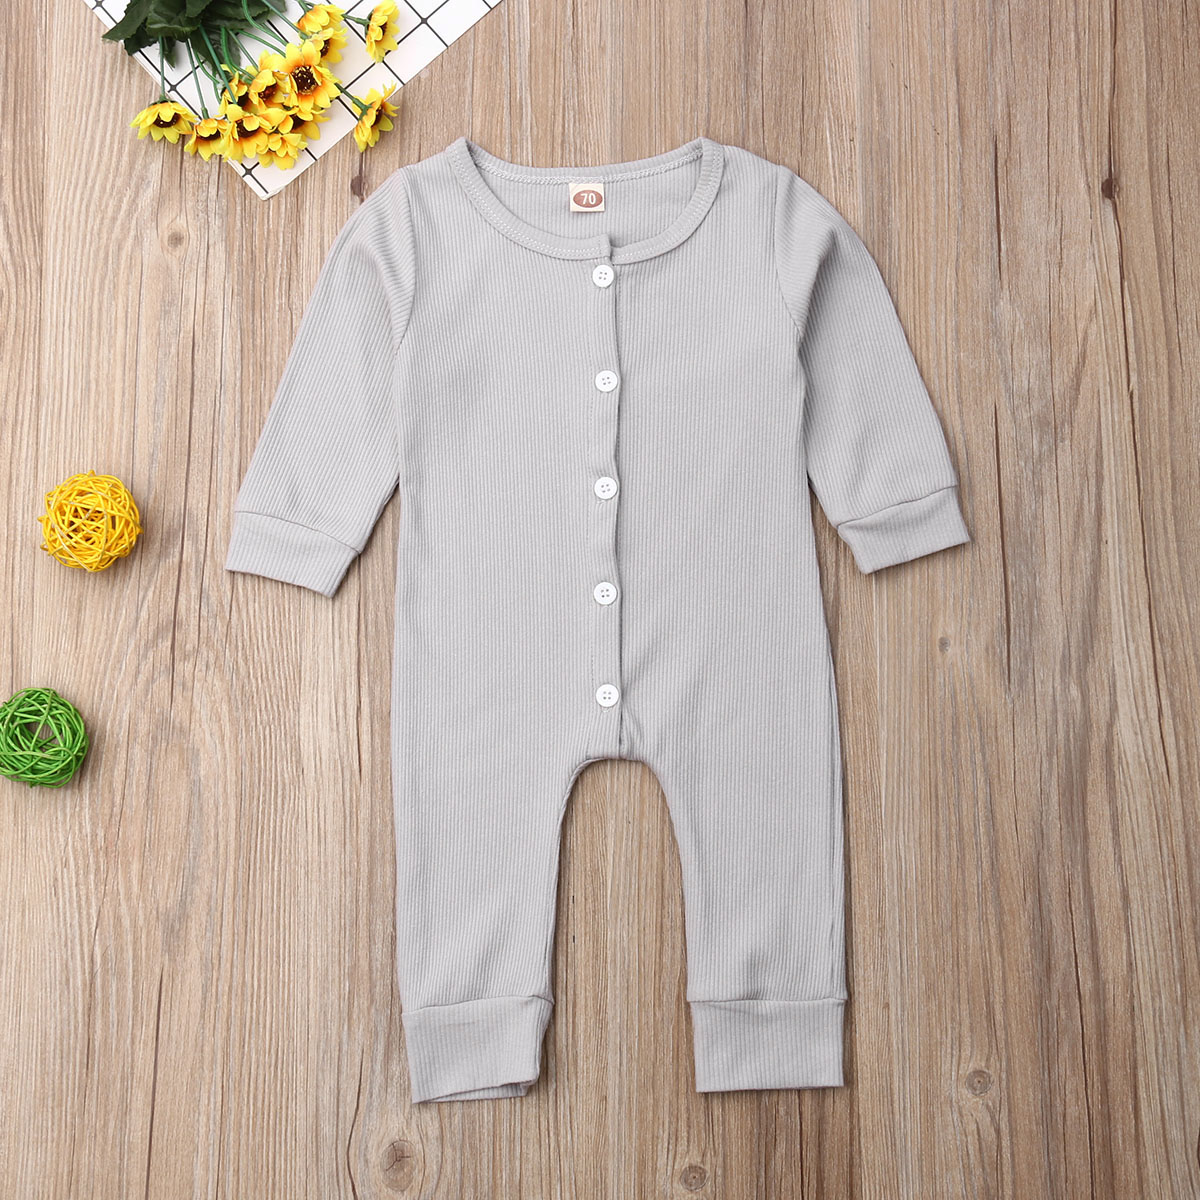 Sleepy Time Button Down Romper